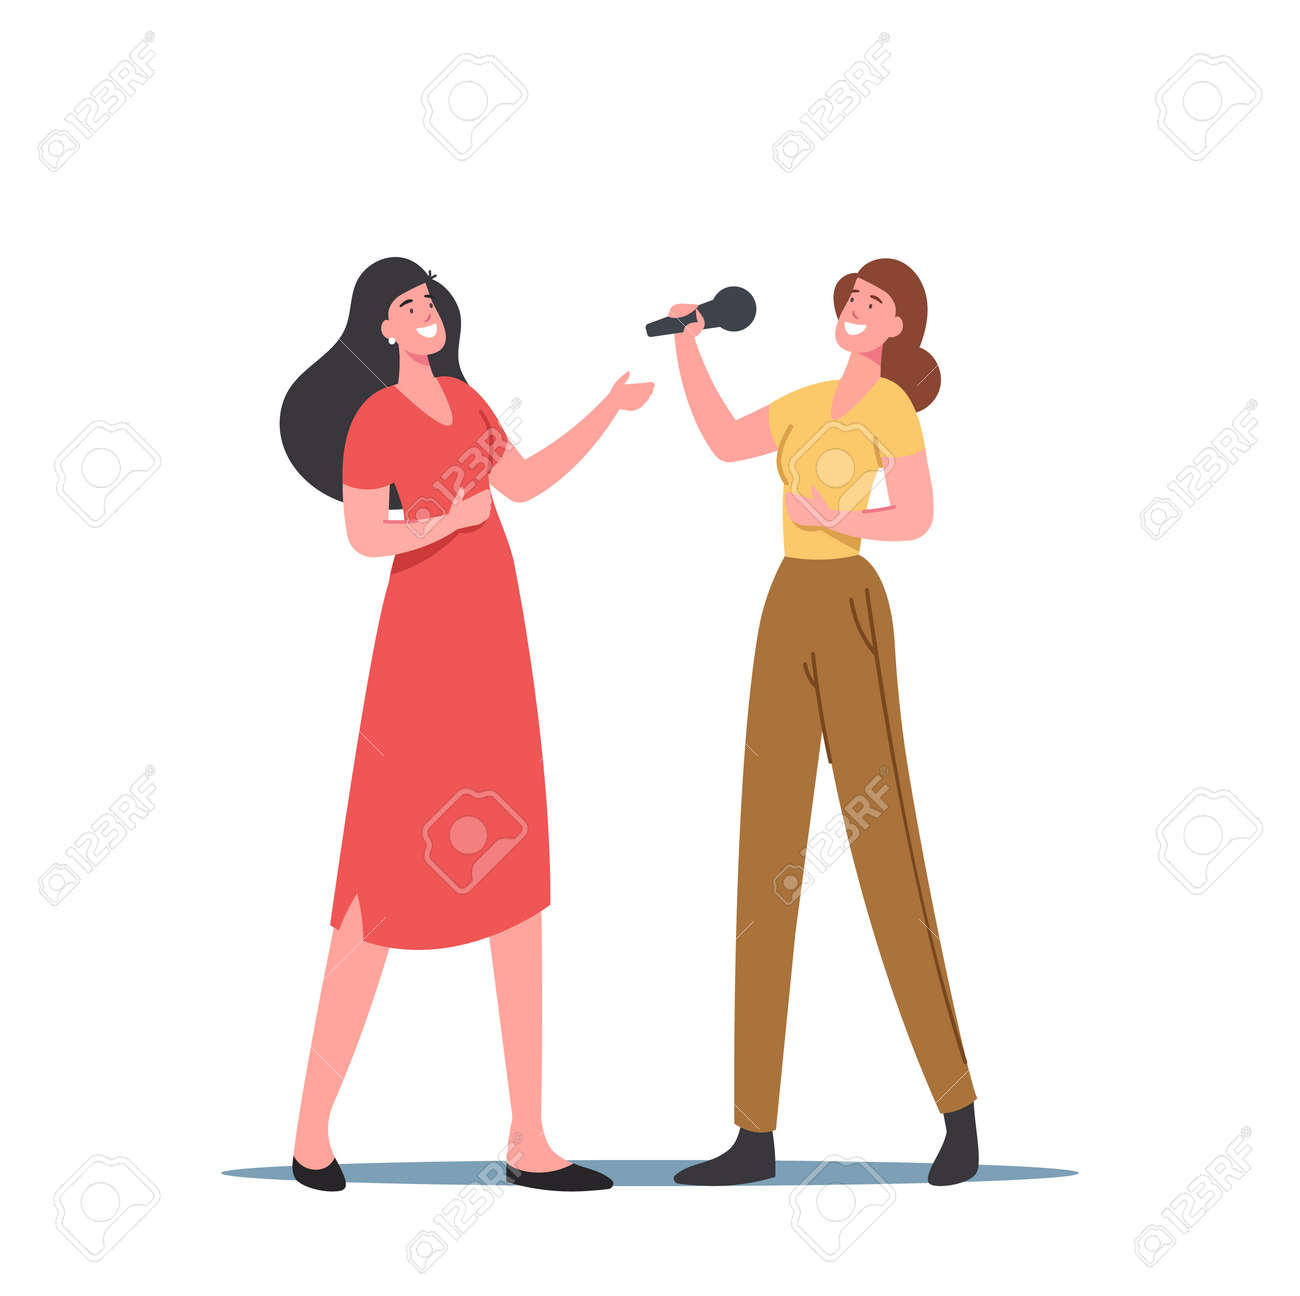 Female Characters Sing with Microphones, Vocal Lessons, Training Voice or Singing Songs in Karaoke. Women Develop Talent - 171875796